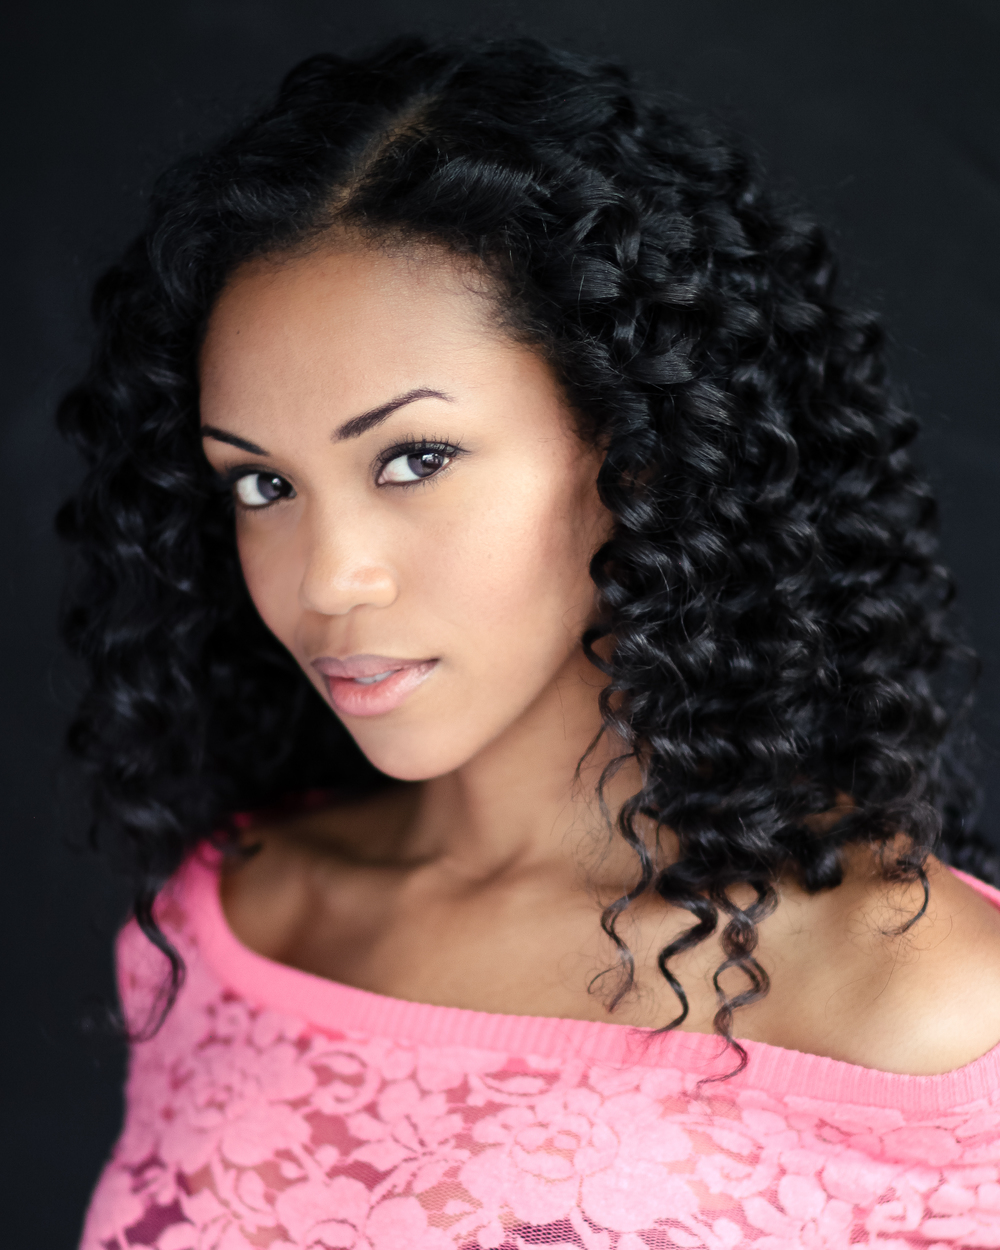 MishaelMorgan-9944 copy.jpg